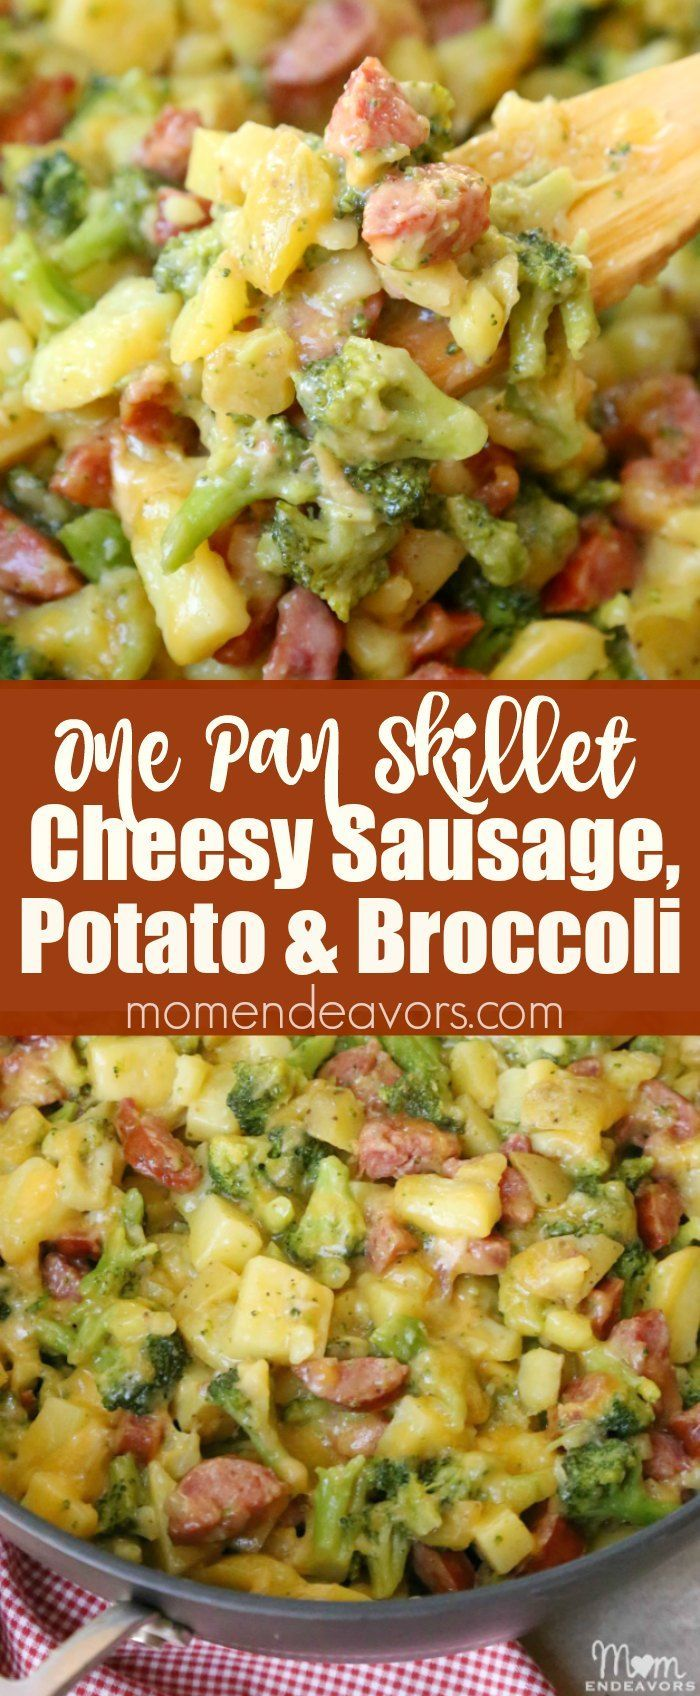 Cheesy Sausage, Potato, and Broccoli Skillet -  an easy one pan meal recipe! Sponsored by @klementsausage #WhatsCookingWednesday